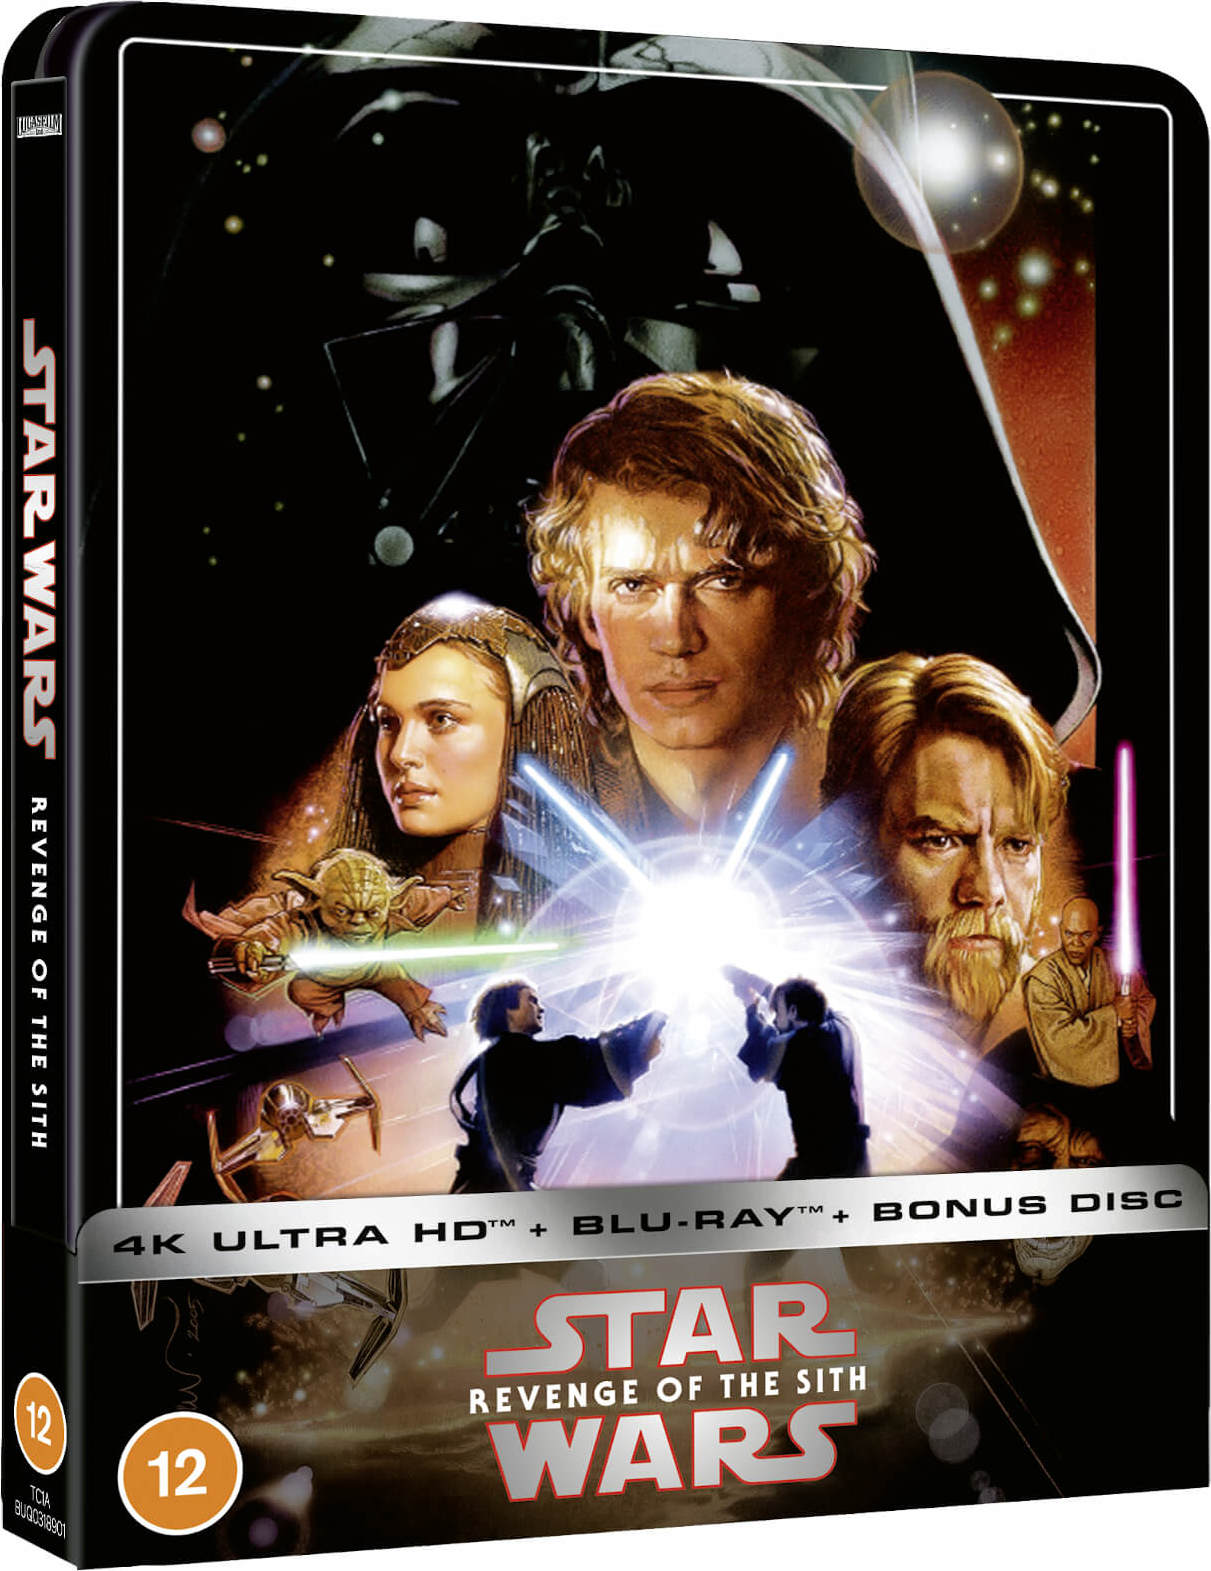 Star Wars Episode Iii Revenge Of The Sith 4k Blu Ray Release Date October 12 2020 Zavvi Exclusive Steelbook United Kingdom